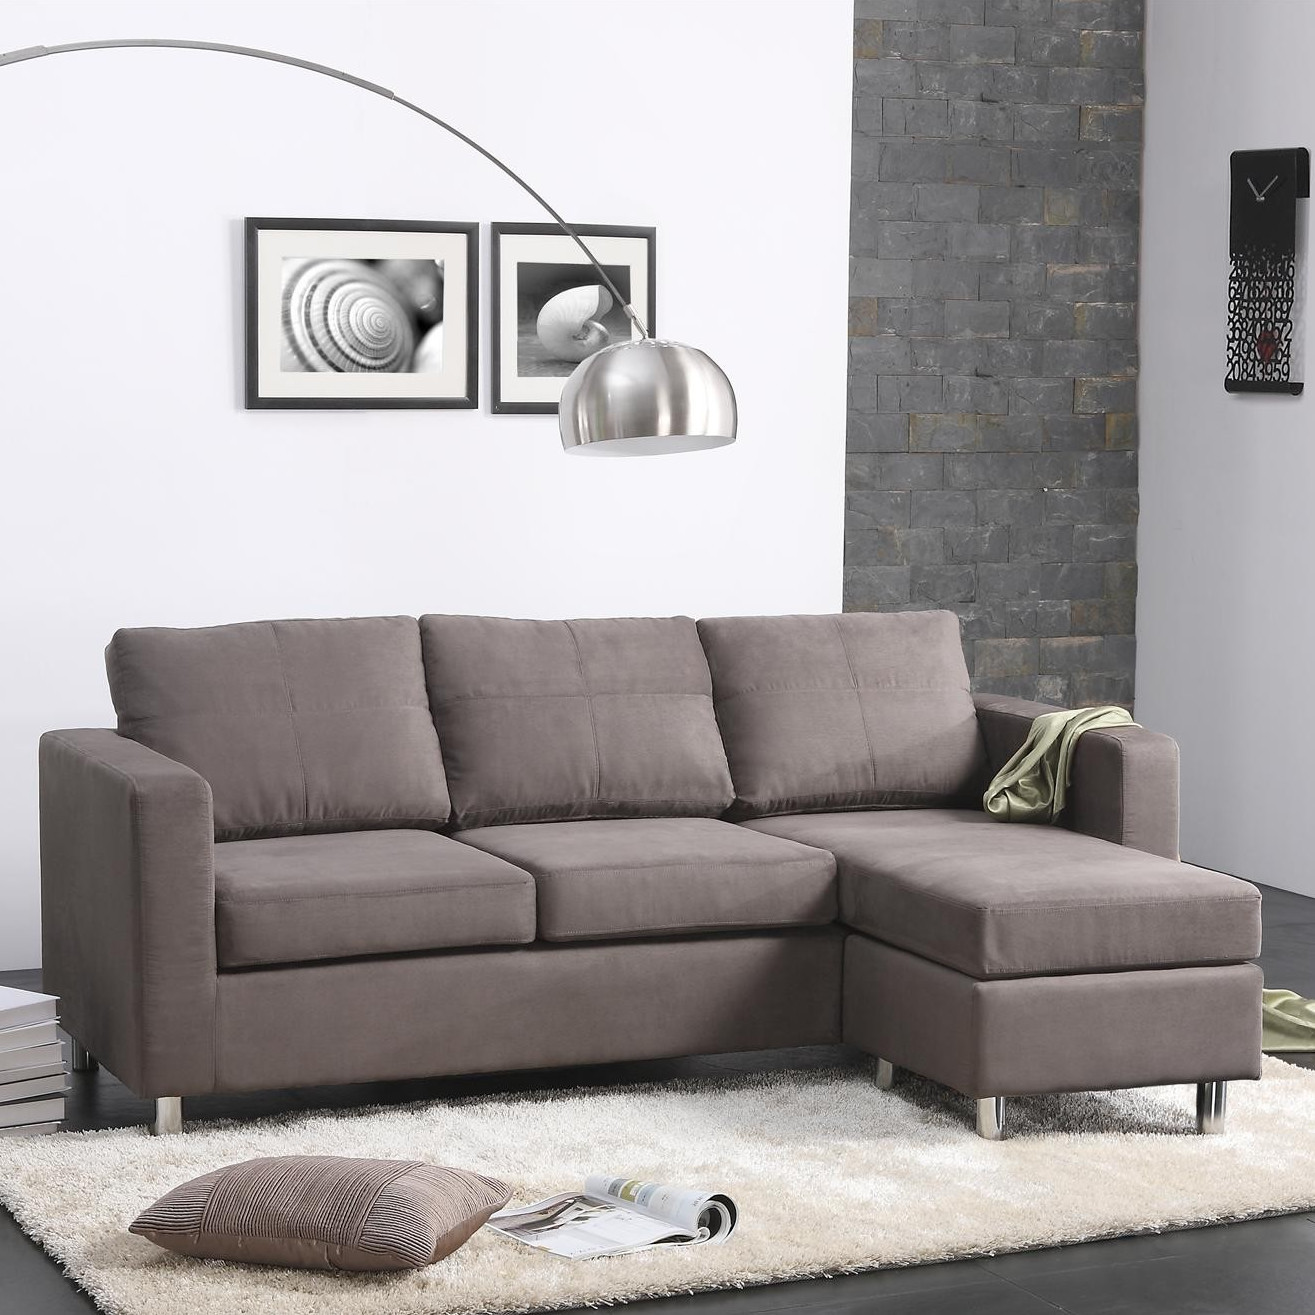 Best ideas about Wayfair Sectional Sofa . Save or Pin Dorel Living Small Spaces Right Hand Facing Sectional Now.